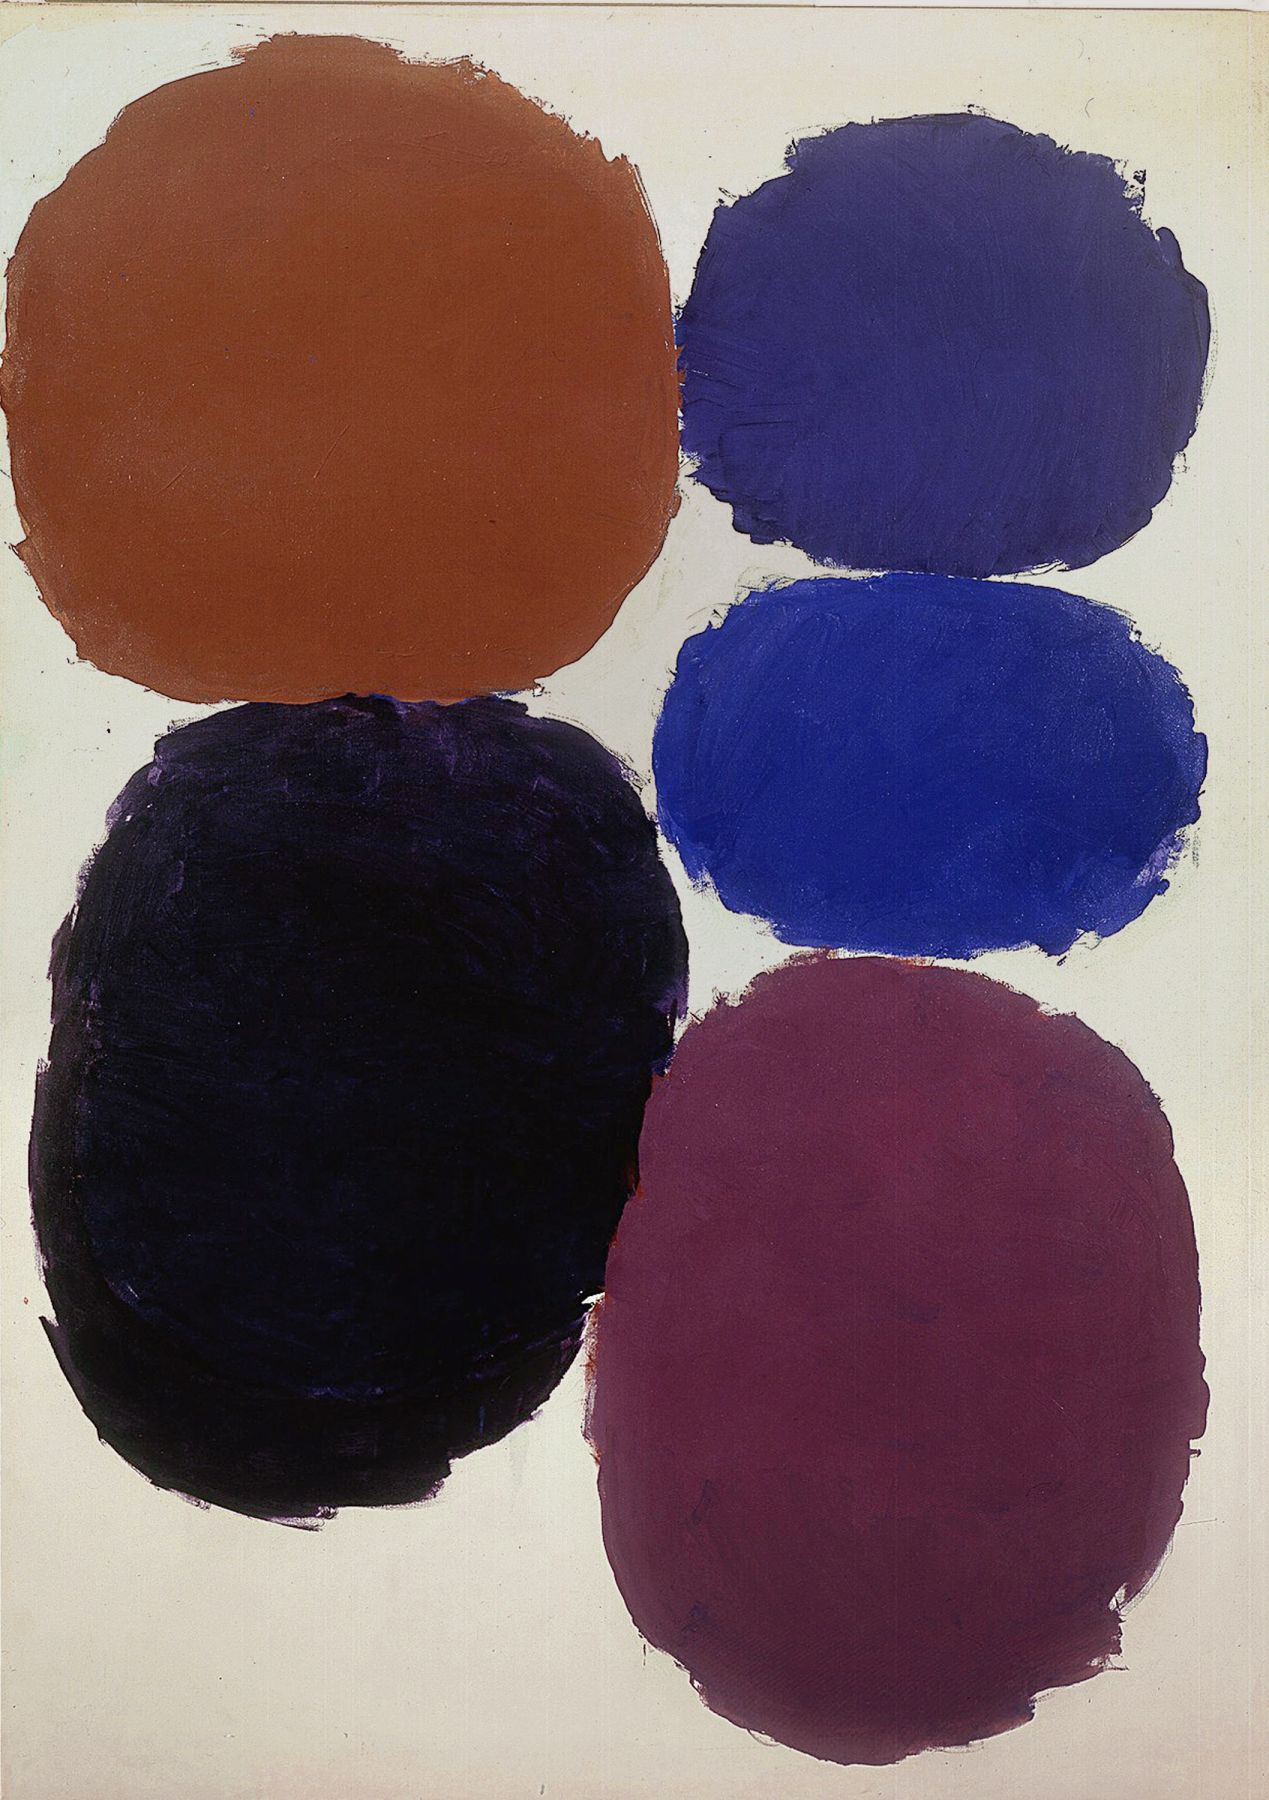 Ray Parker, Untitled, 1959, oil on canvas, 60 x 50 in.